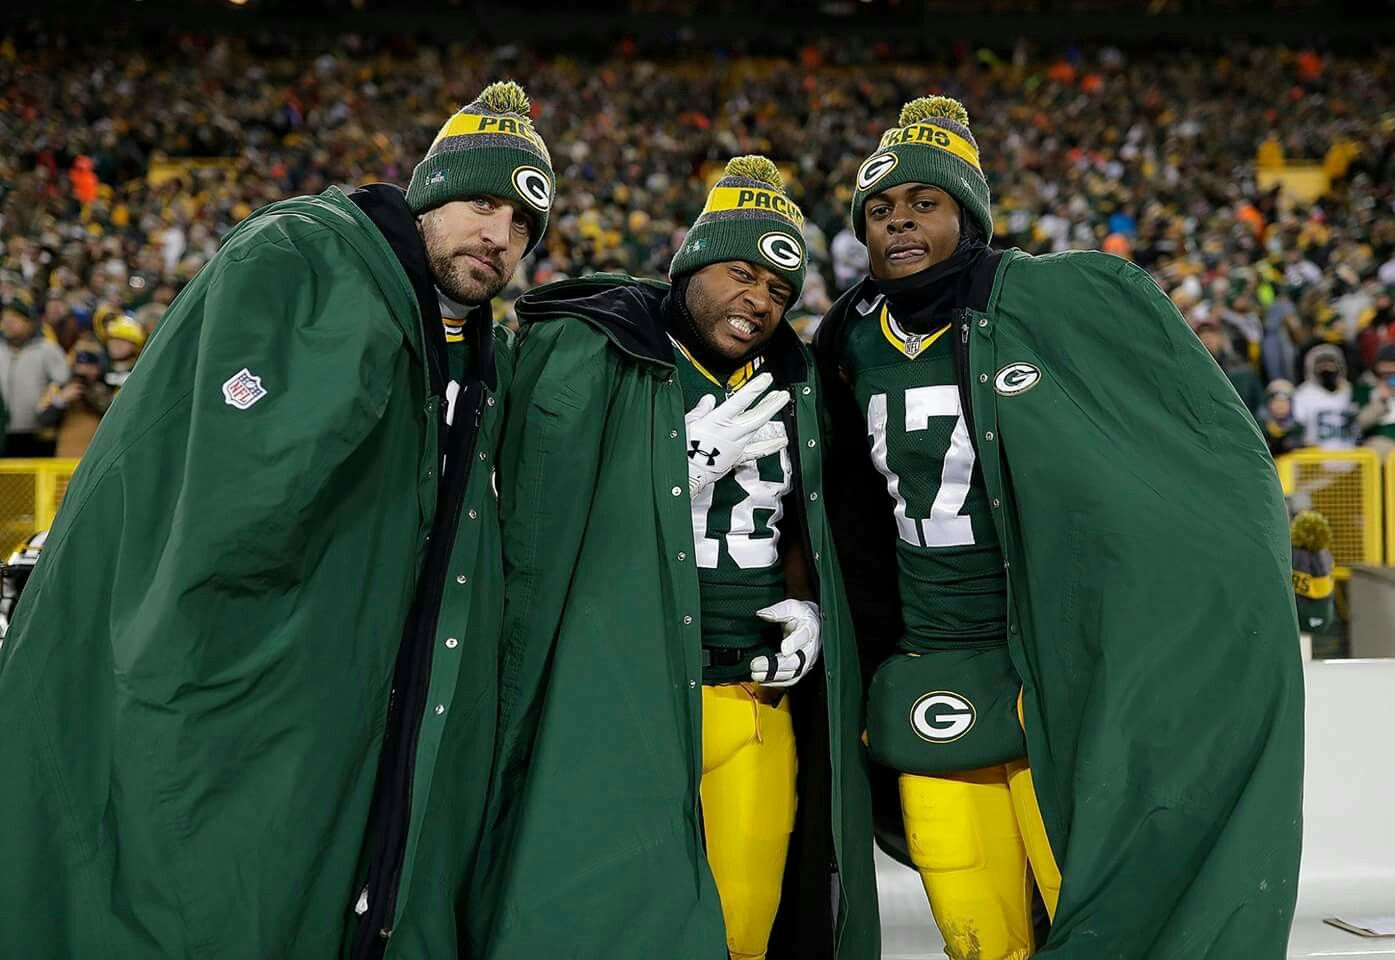 Aaron Rodgers Randall Cobb And Davante Adams Green Bay Packers Clothing Green Bay Packers Football Packers Clothing